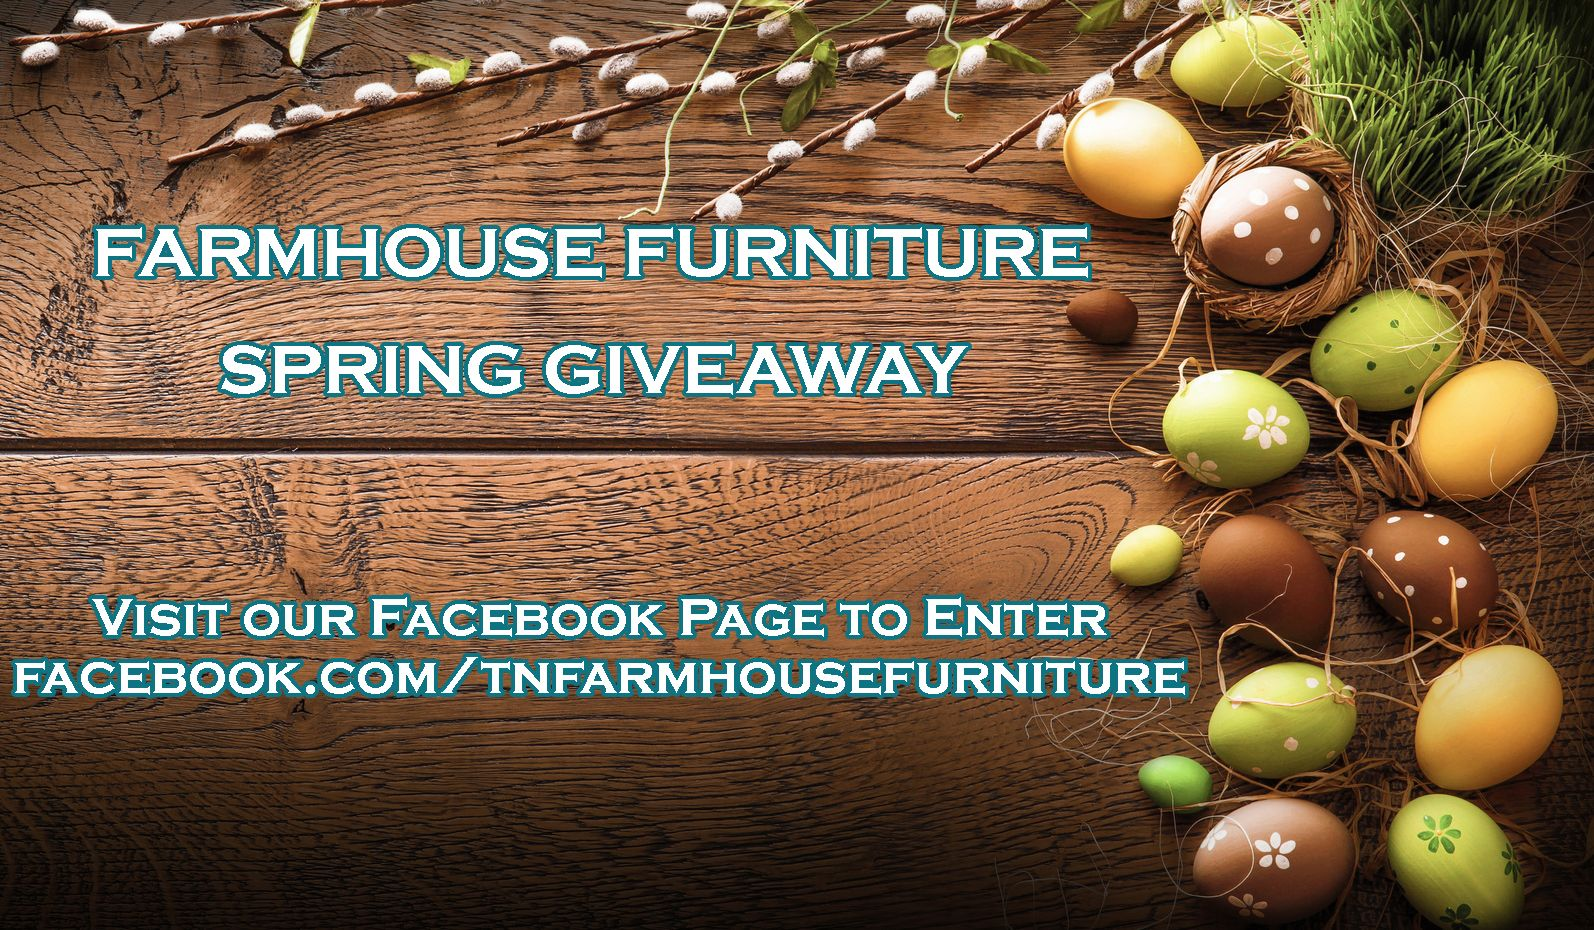 Make Sure To Visit Our Facebook Page To Enter Our Spring